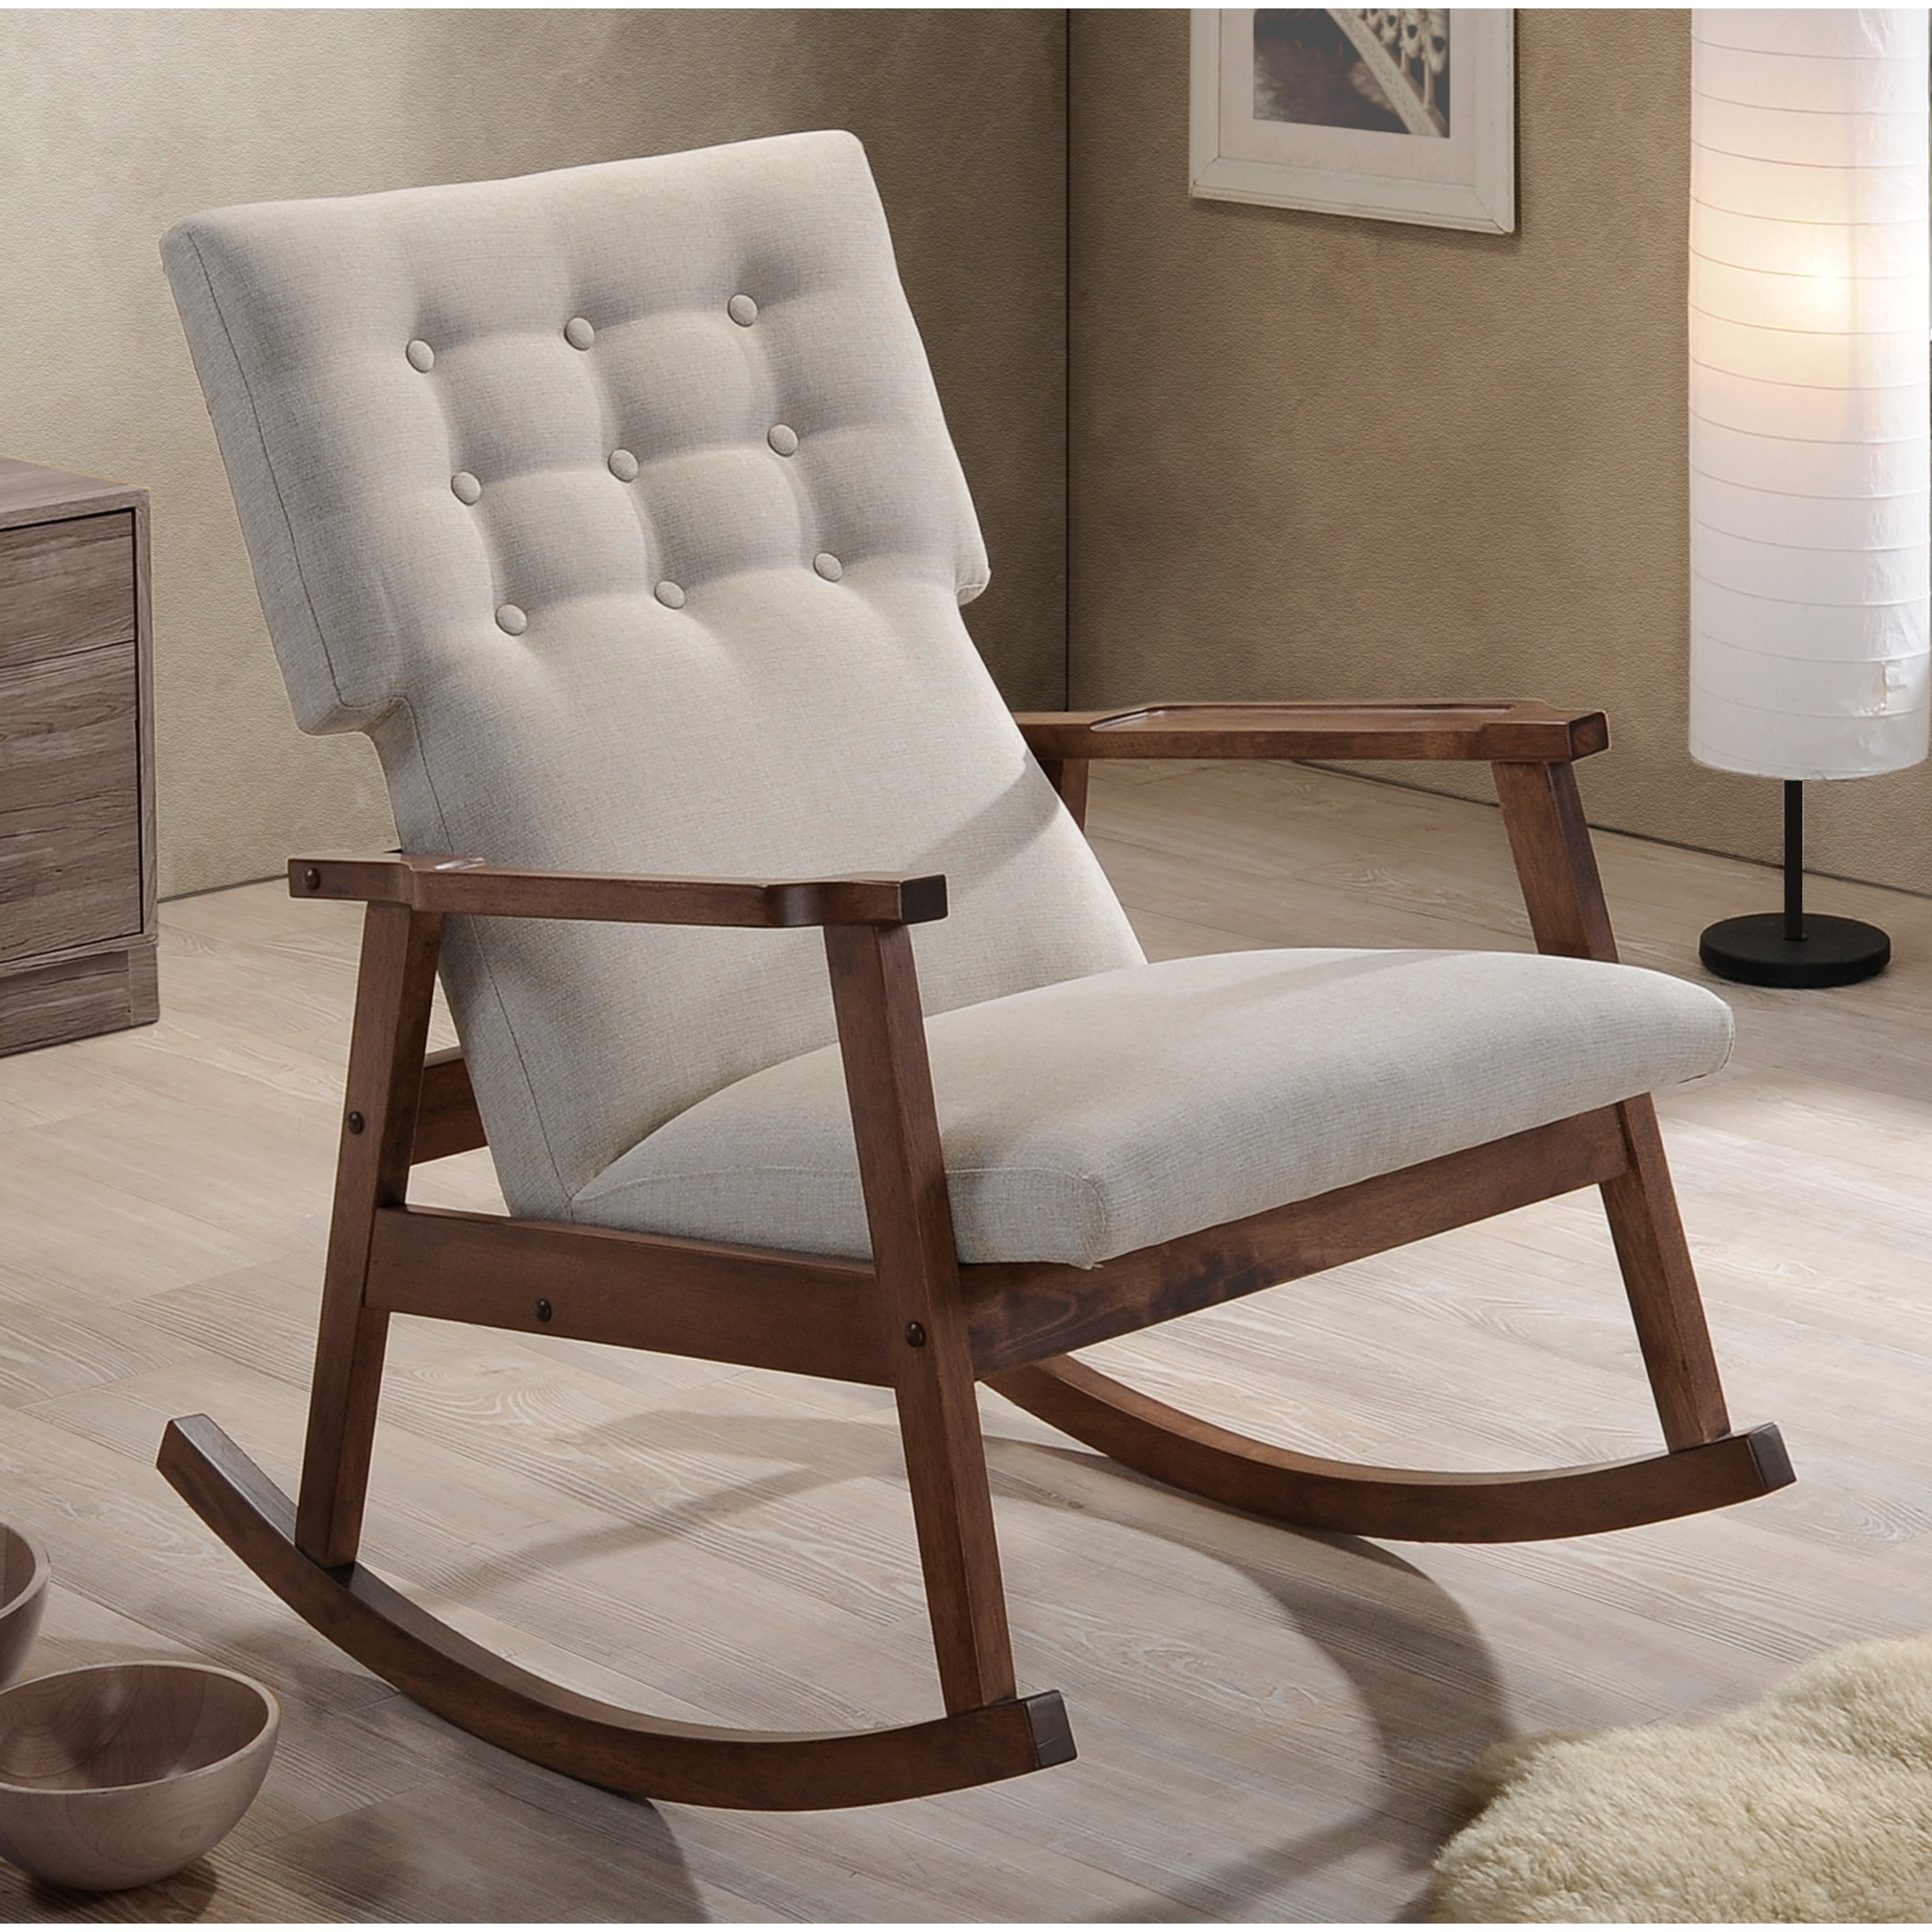 Best And Newest High Back Rocking Chairs Within High Back Rocking Chair – Modern Chairs Quality Interior (View 12 of 15)